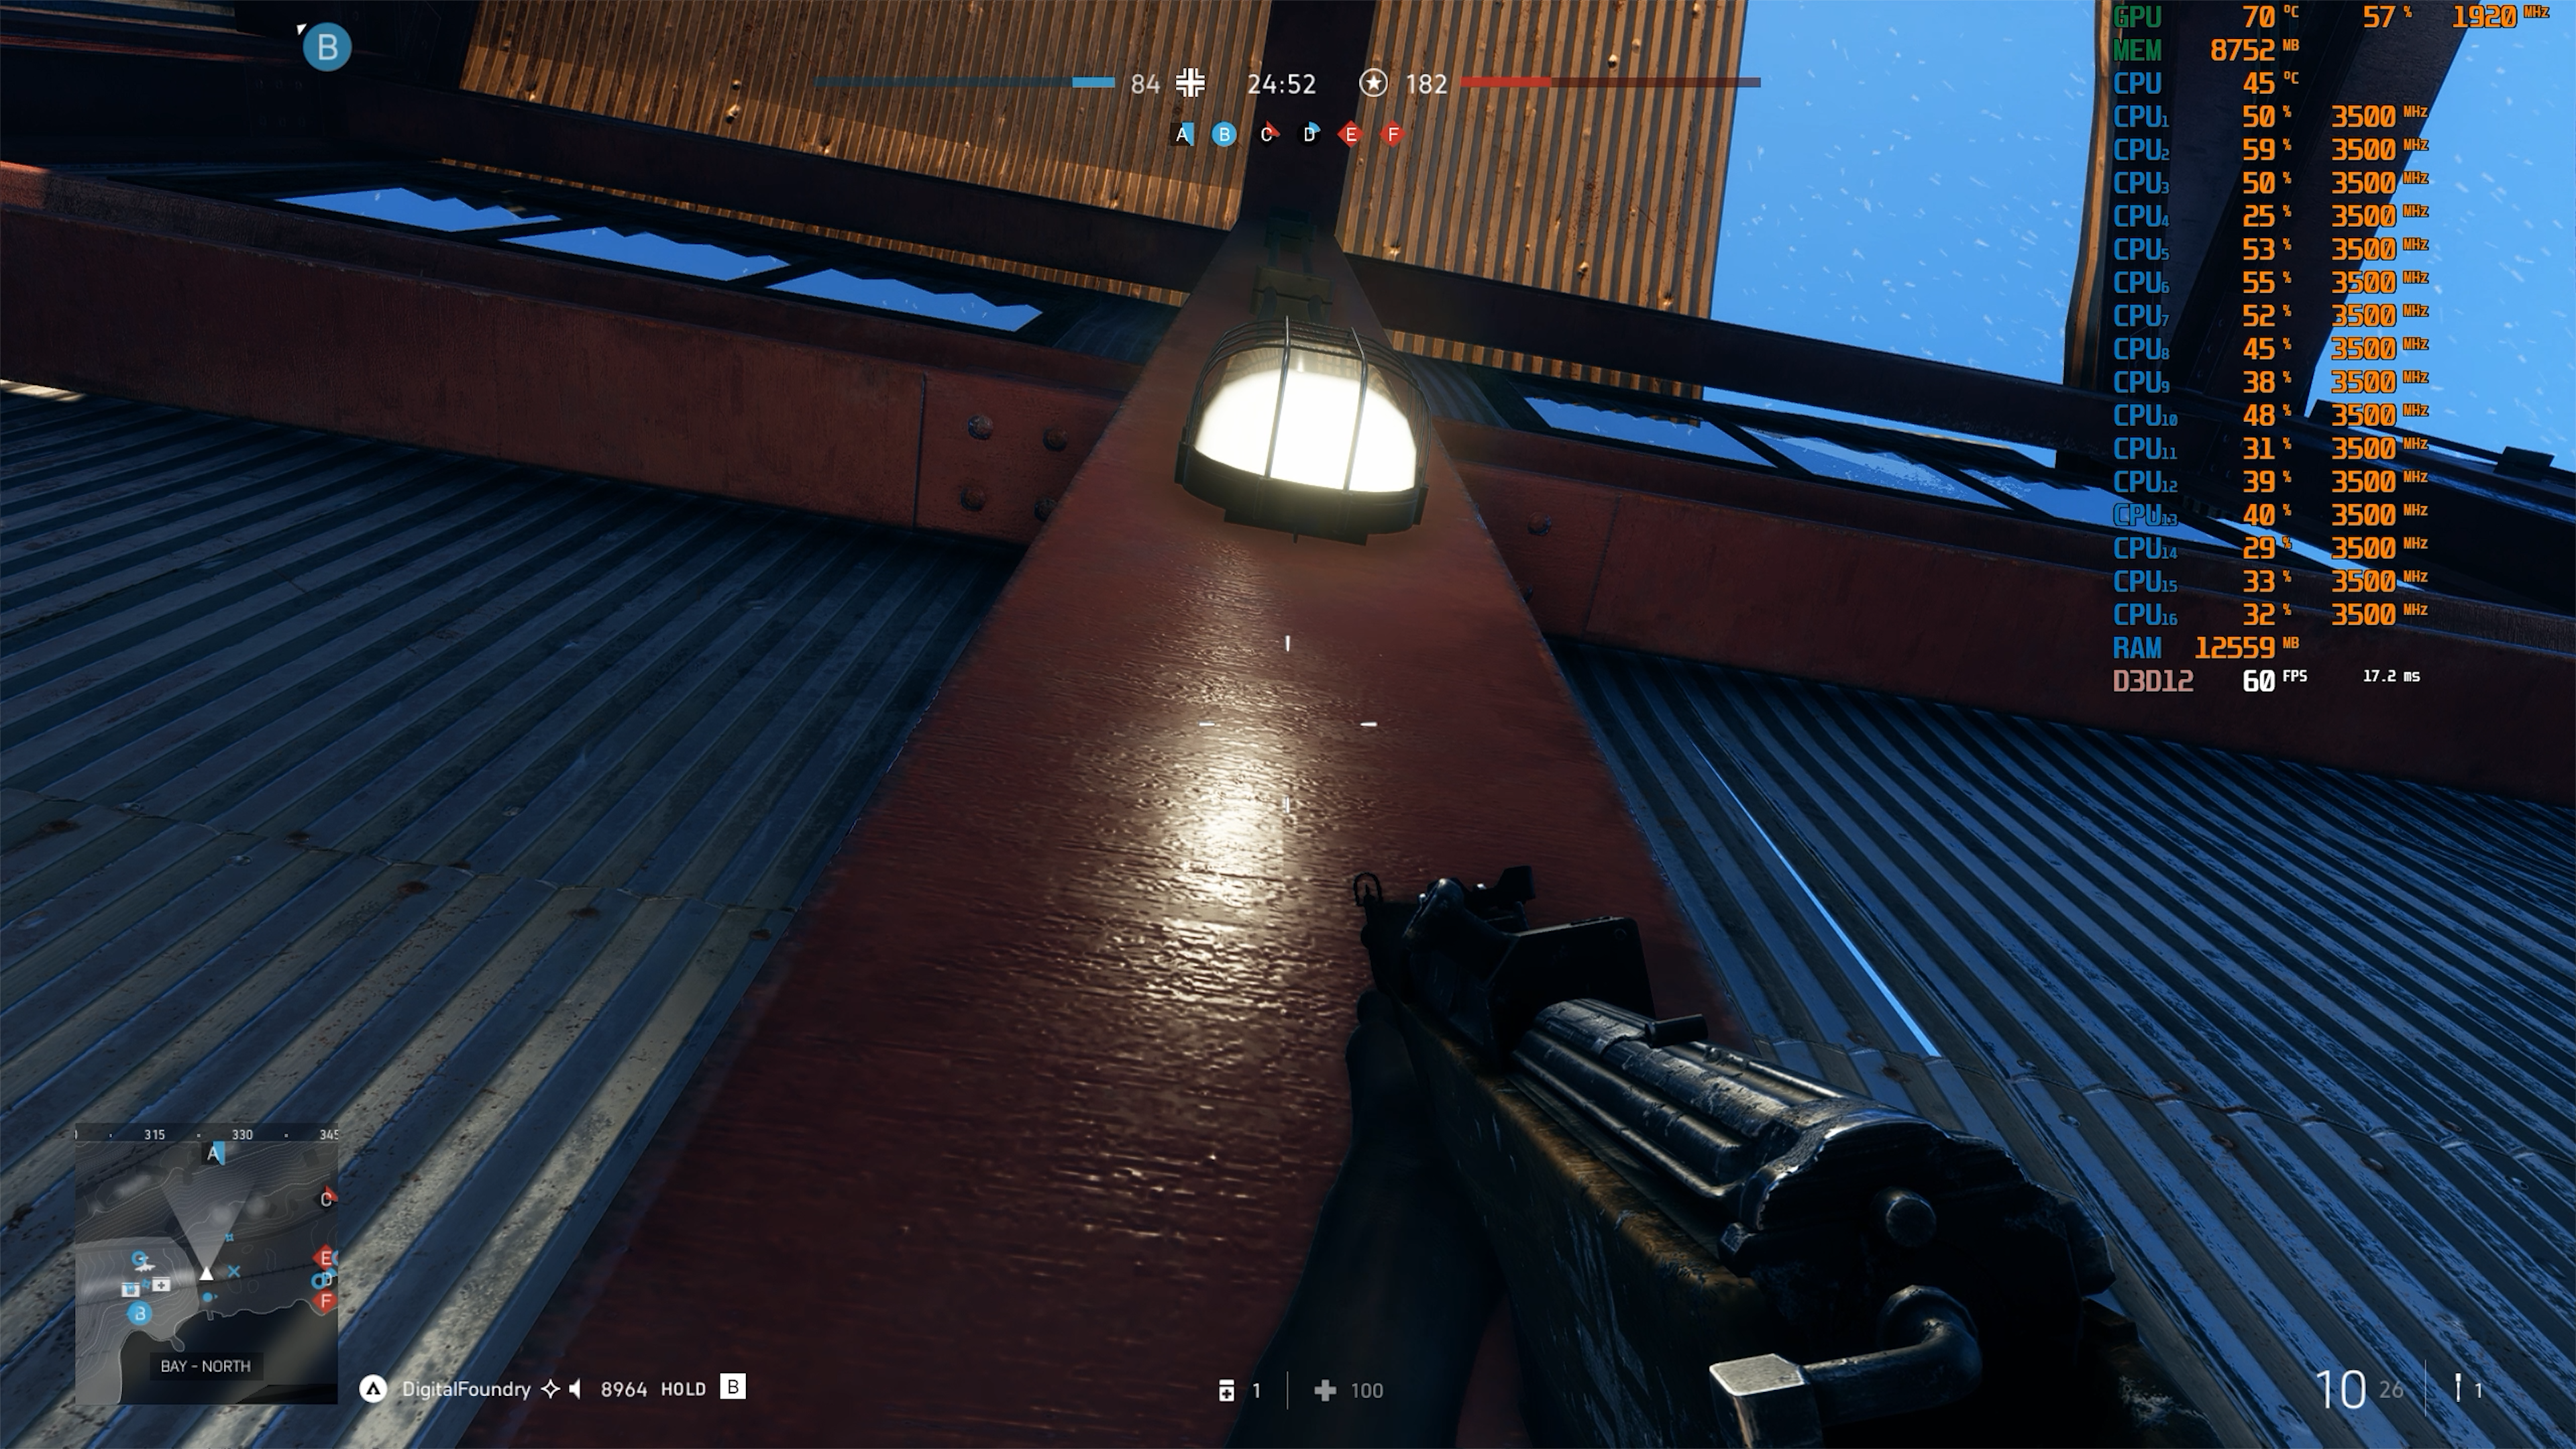 Battlefield 5's RTX ray tracing tested: is this the next level in